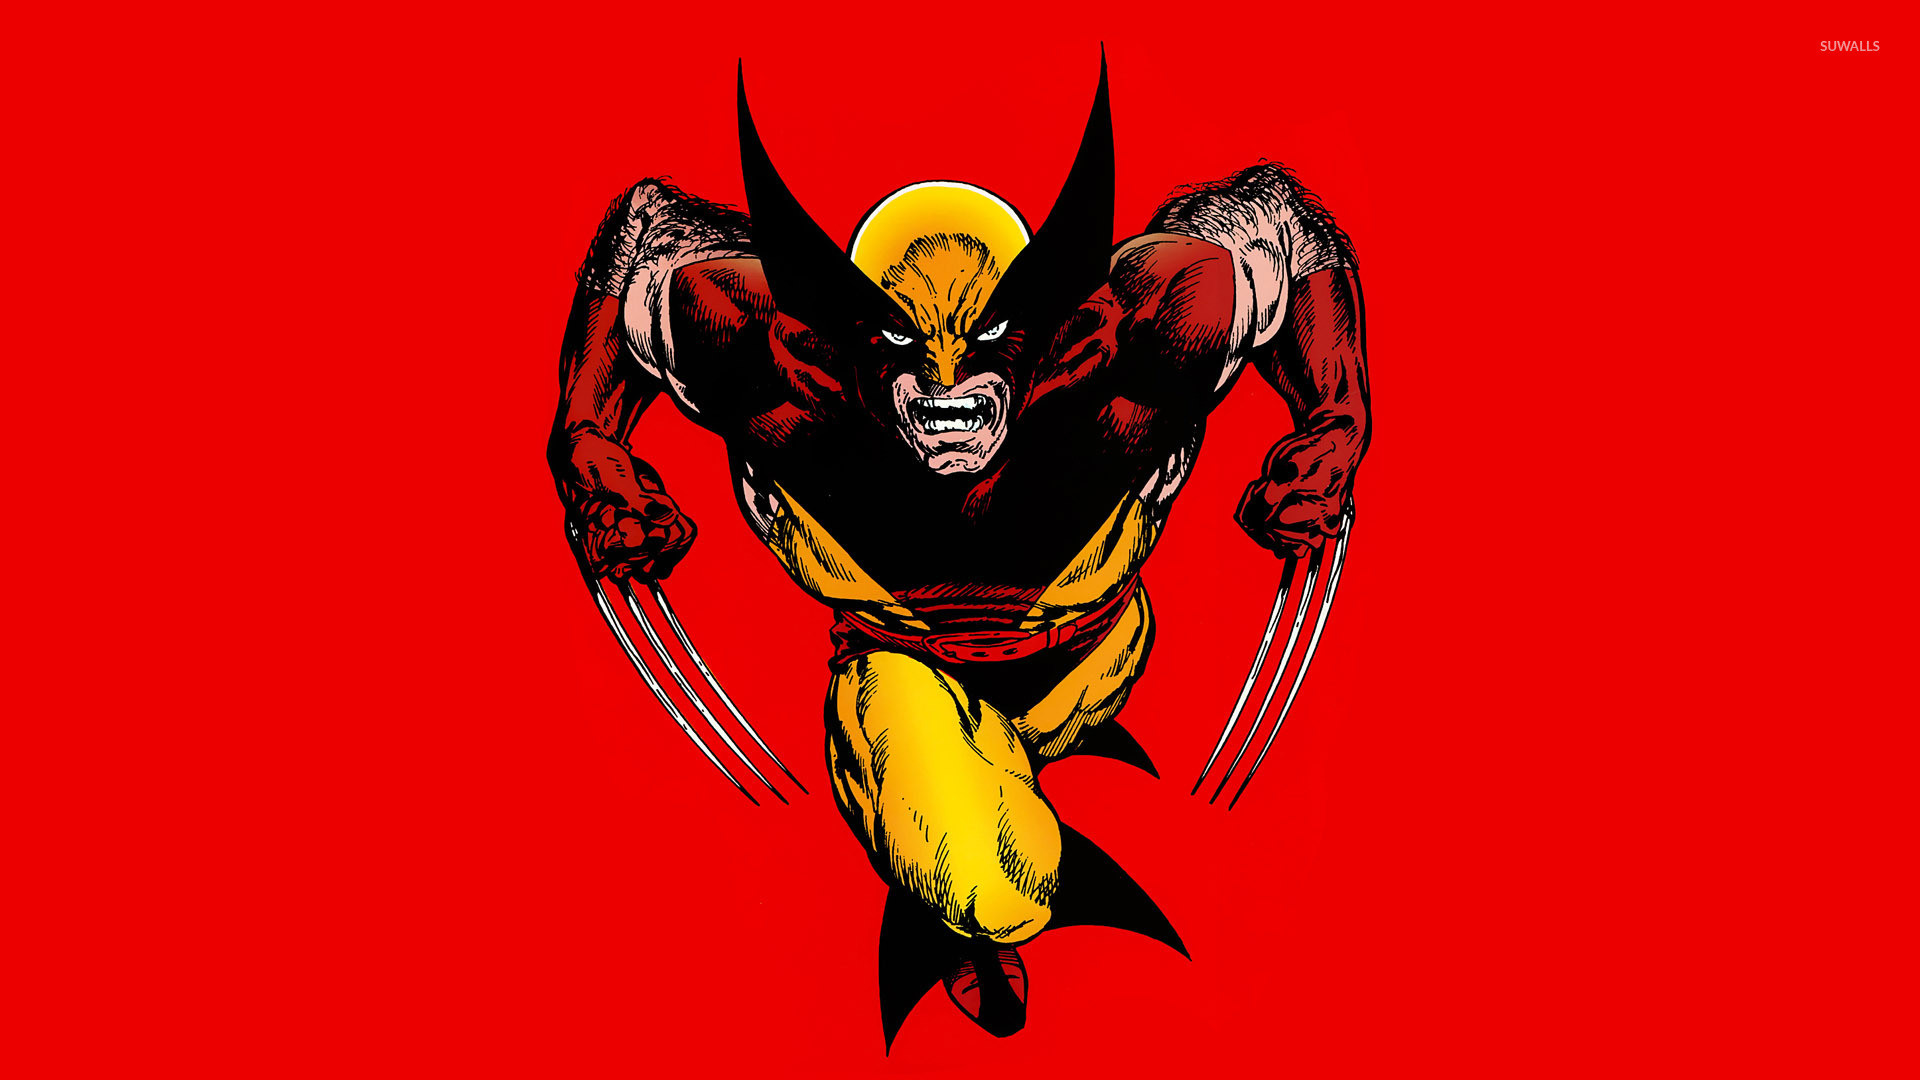 Res: 1920x1080, Wolverine in a fight wallpaper